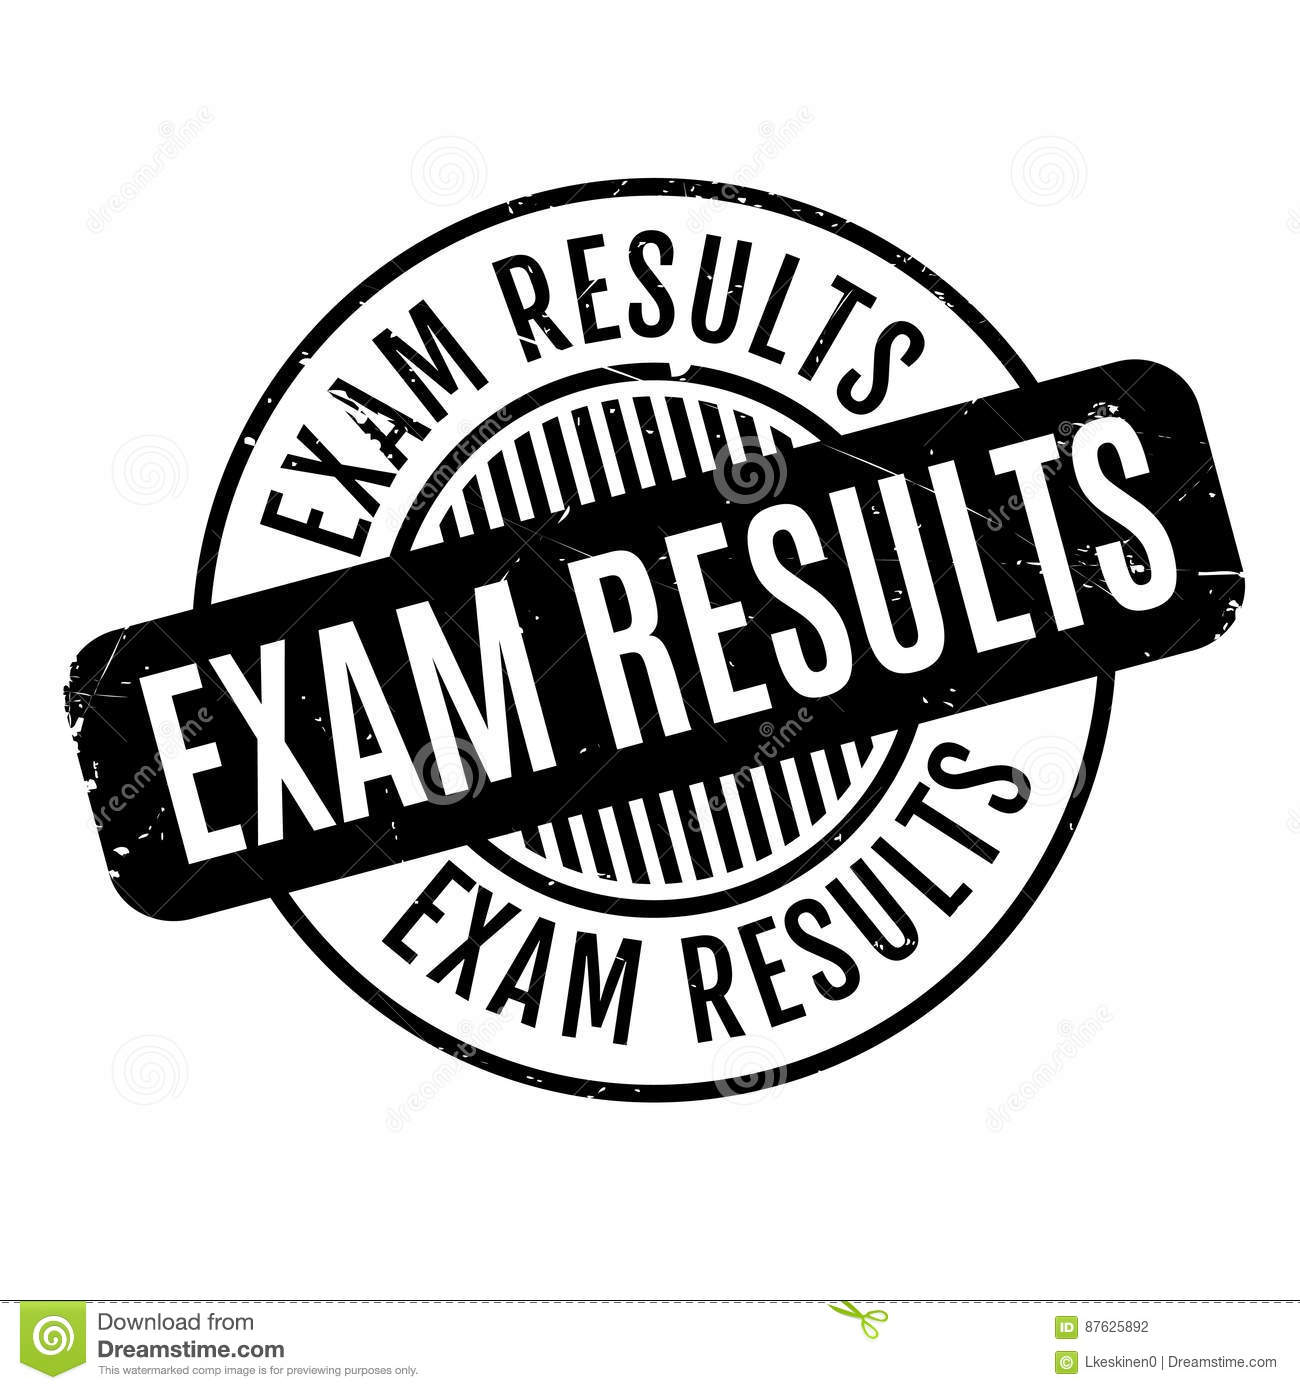 Exam Results rubber stamp stock vector. Image of backwash